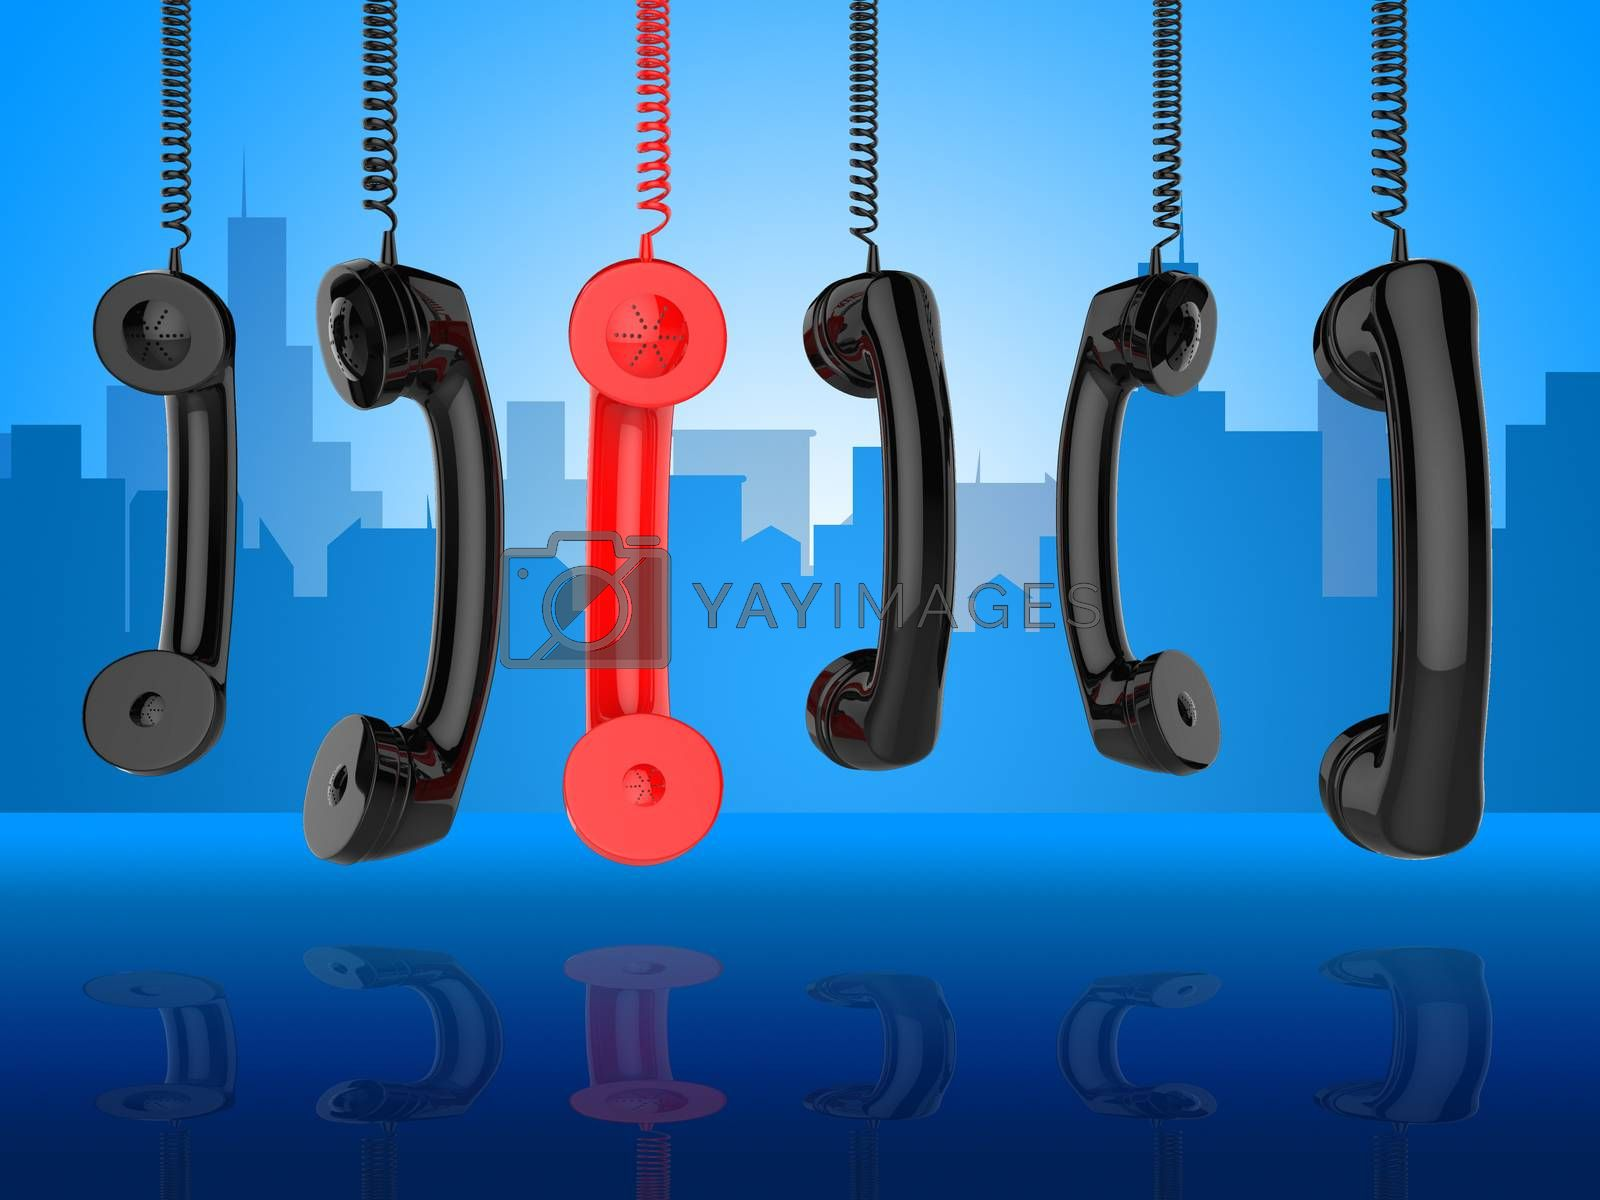 Contact Us Shows Phone Call And Advice by stuartmiles